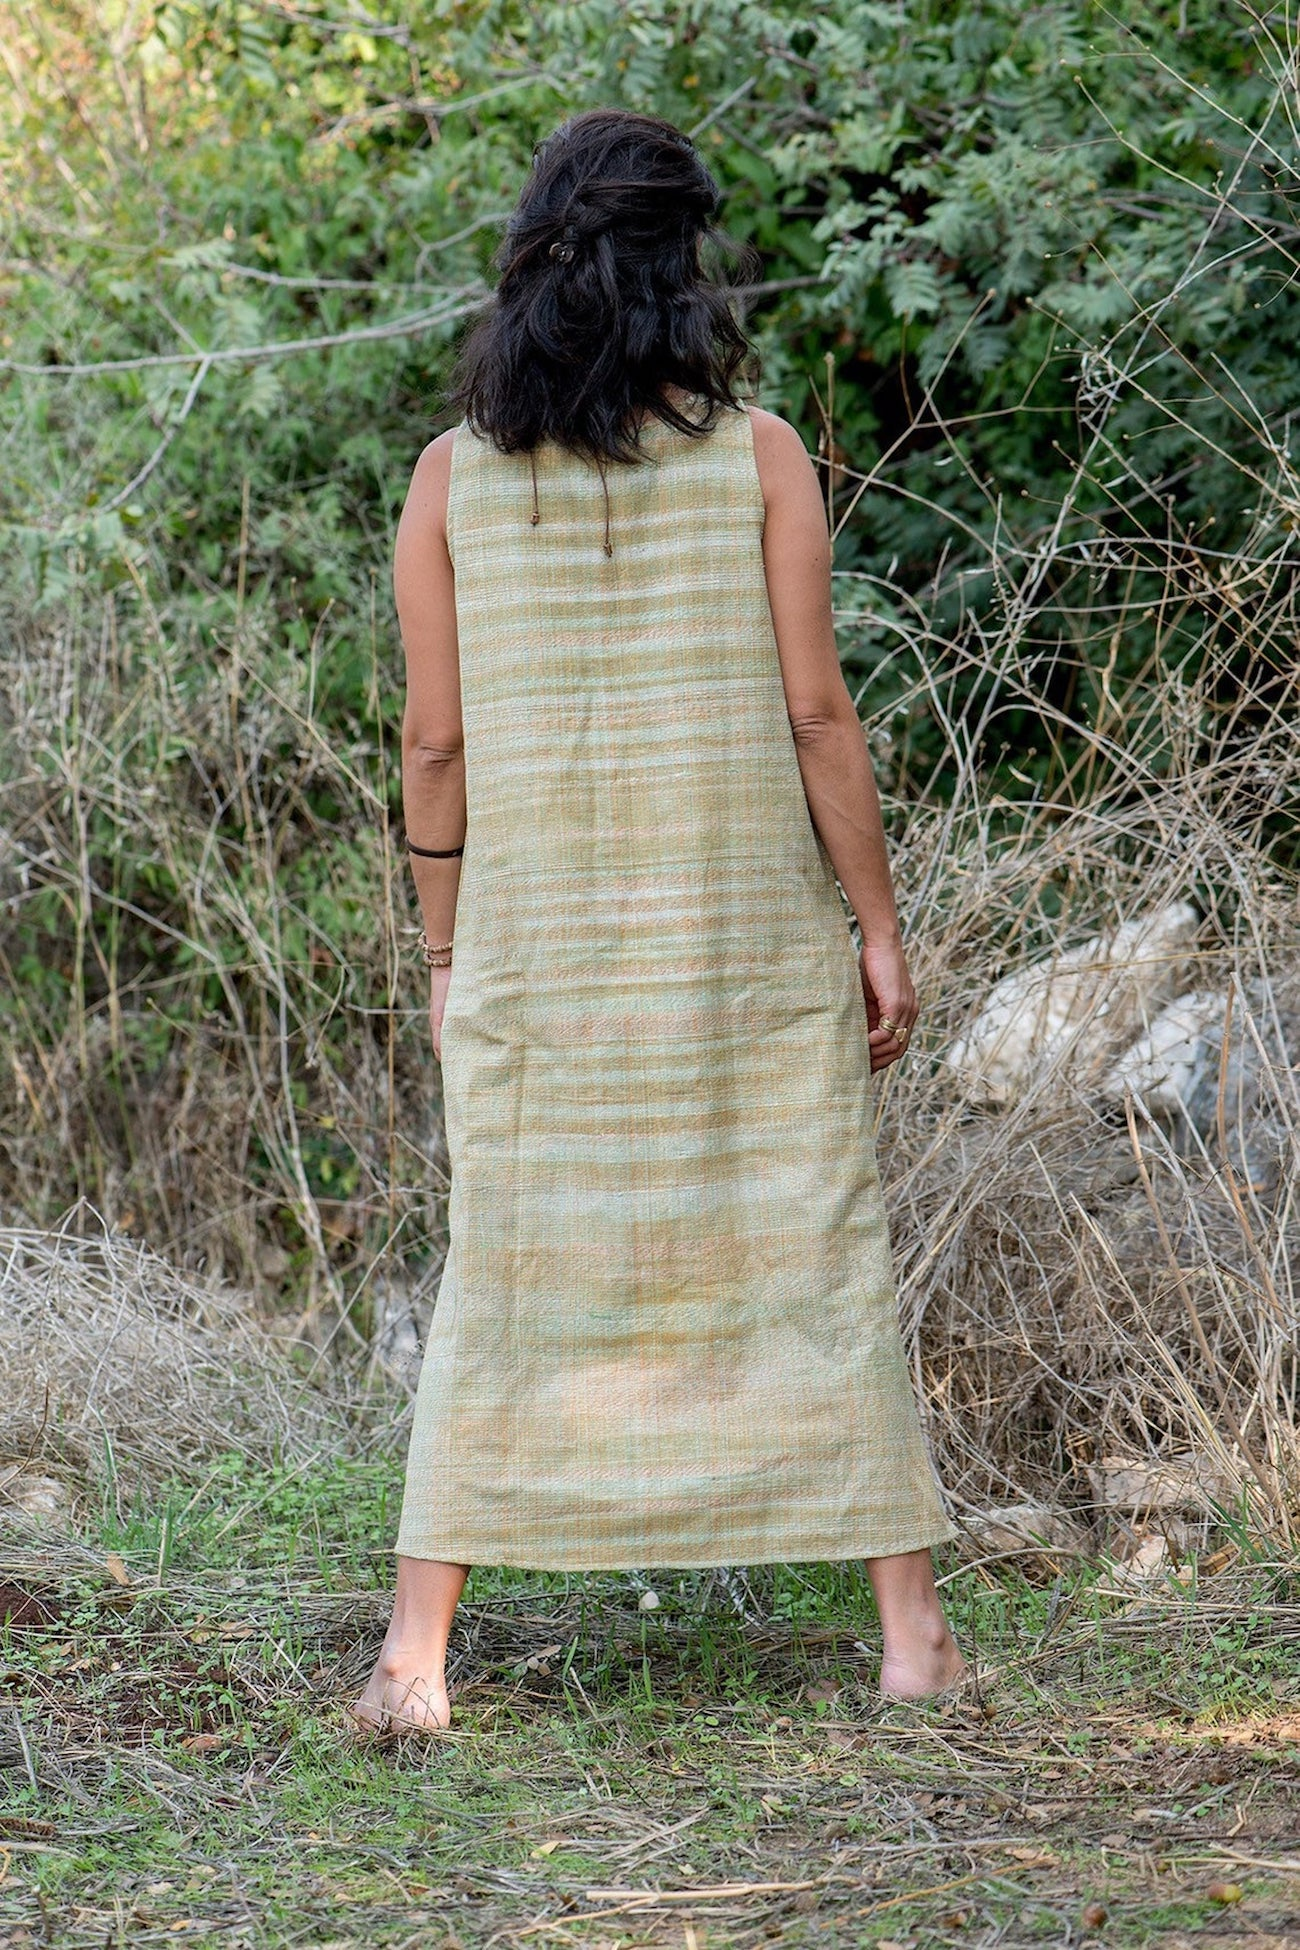 Sangam Dress with coconut buttons. Khadi Cotton Dress. Handwoven Cotton Dress